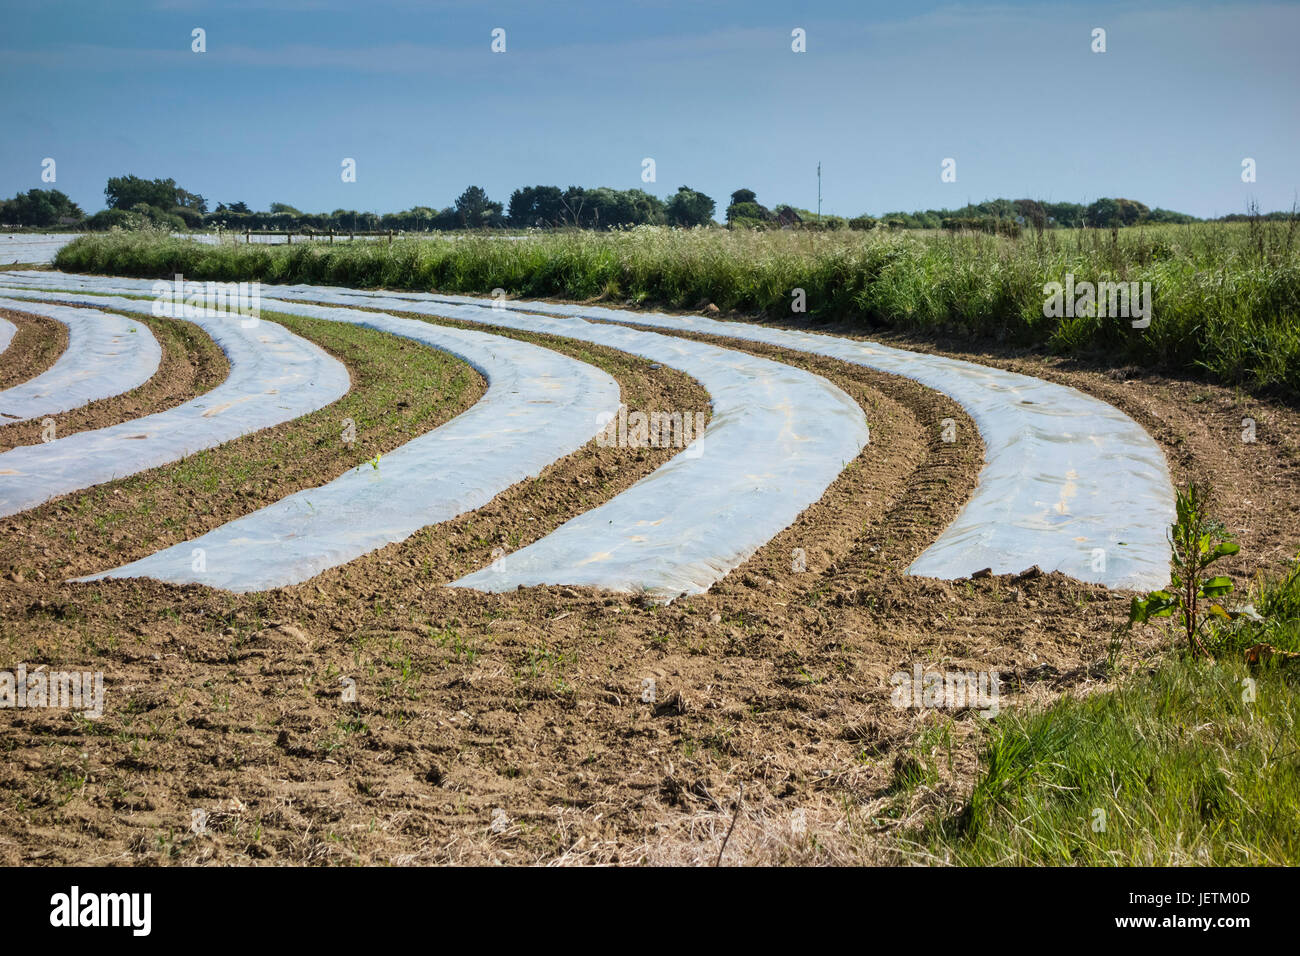 Farm field with crops growing under plastic sheeting, acting as cloches for protection and warmth to encourage growth, - Stock Image